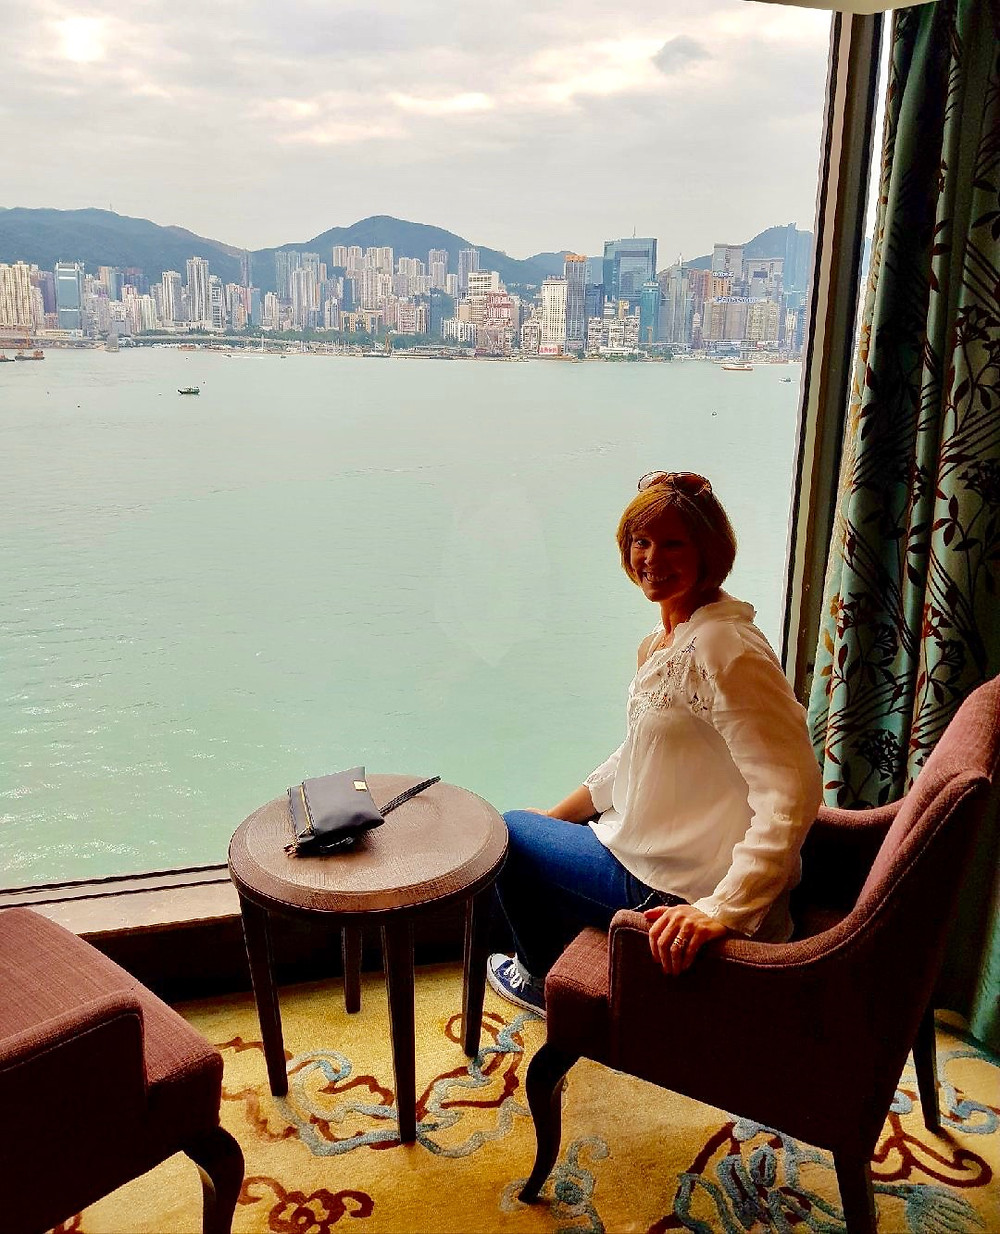 I could get used to this Hong Kong life.